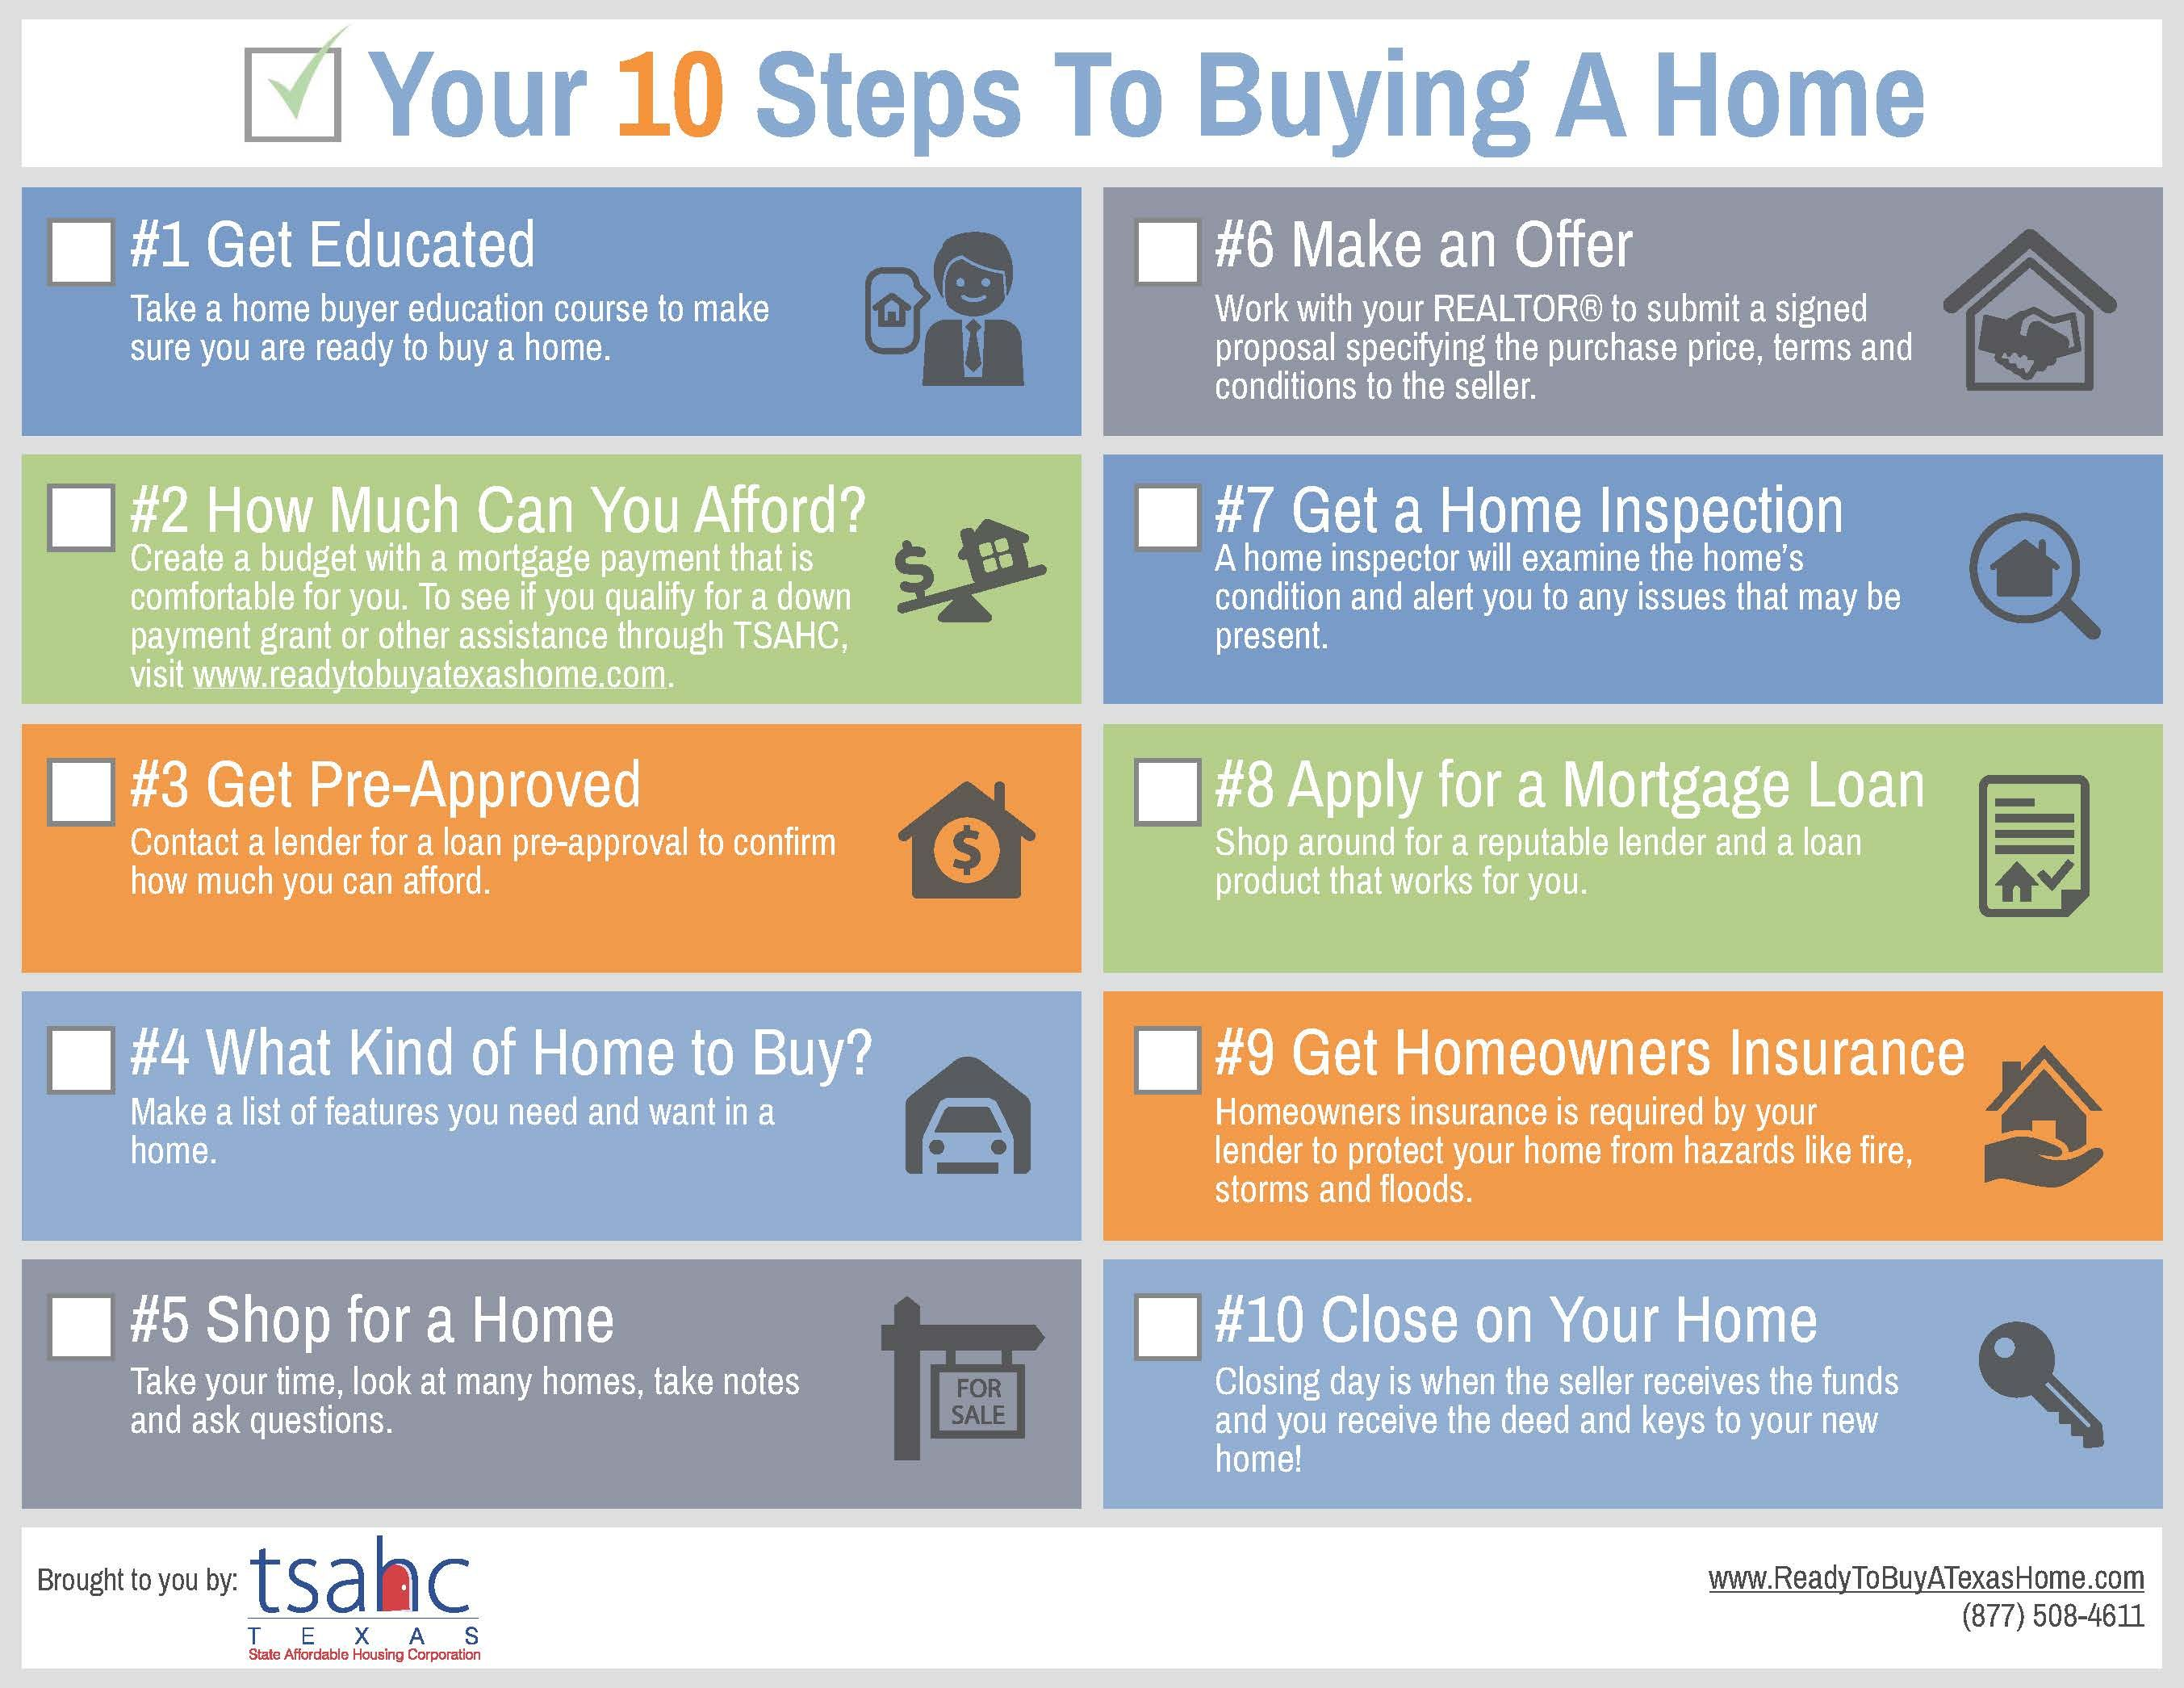 Your 10 Steps To Buying A Home Texas State Affordable Housing